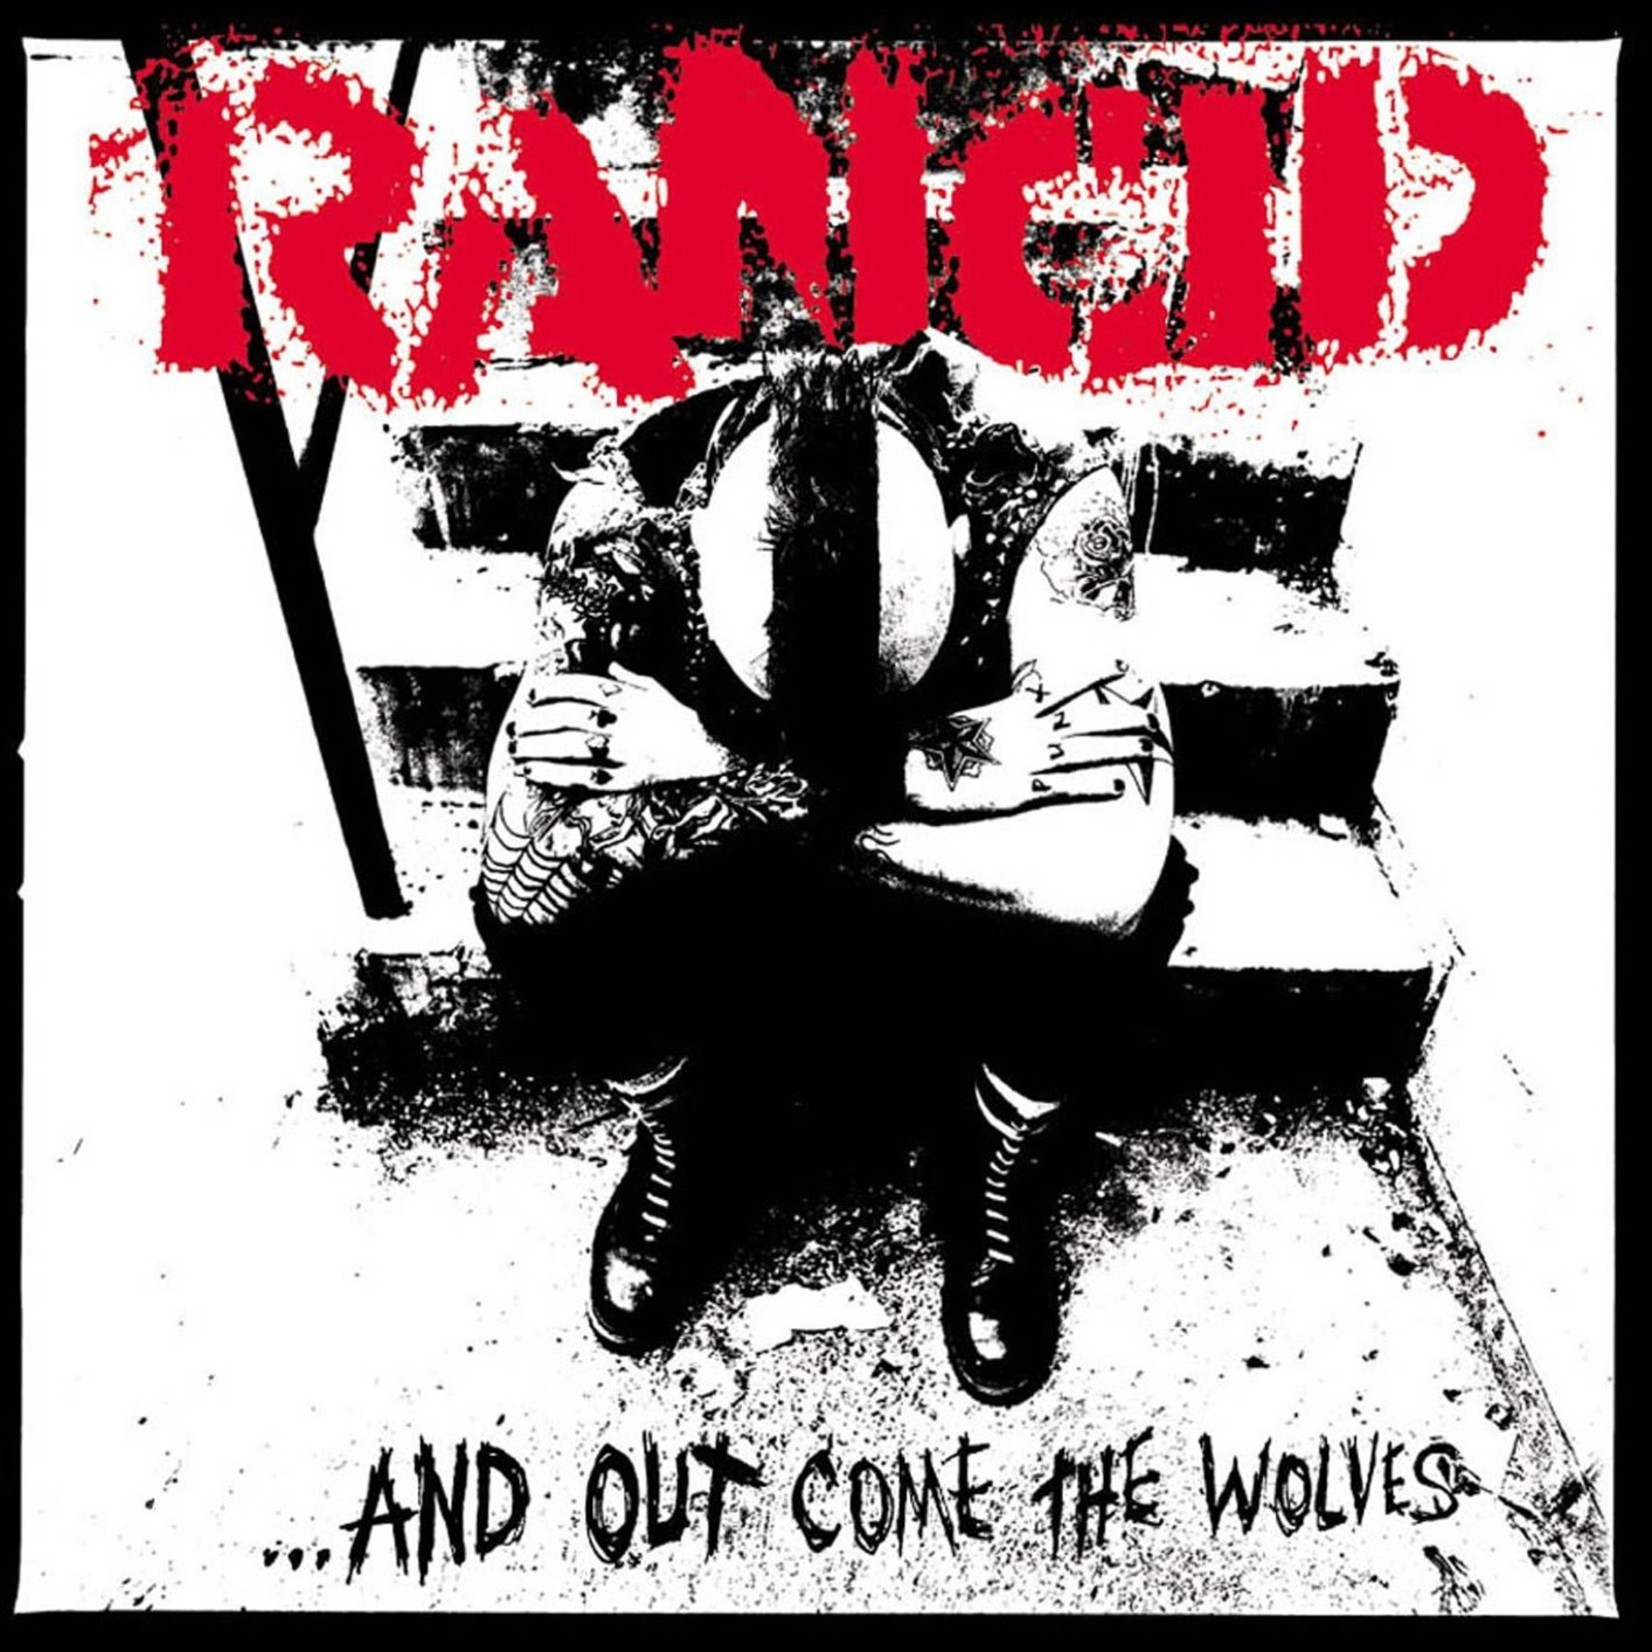 [New] Rancid: And Out Come the Wolves (2015 remaster)